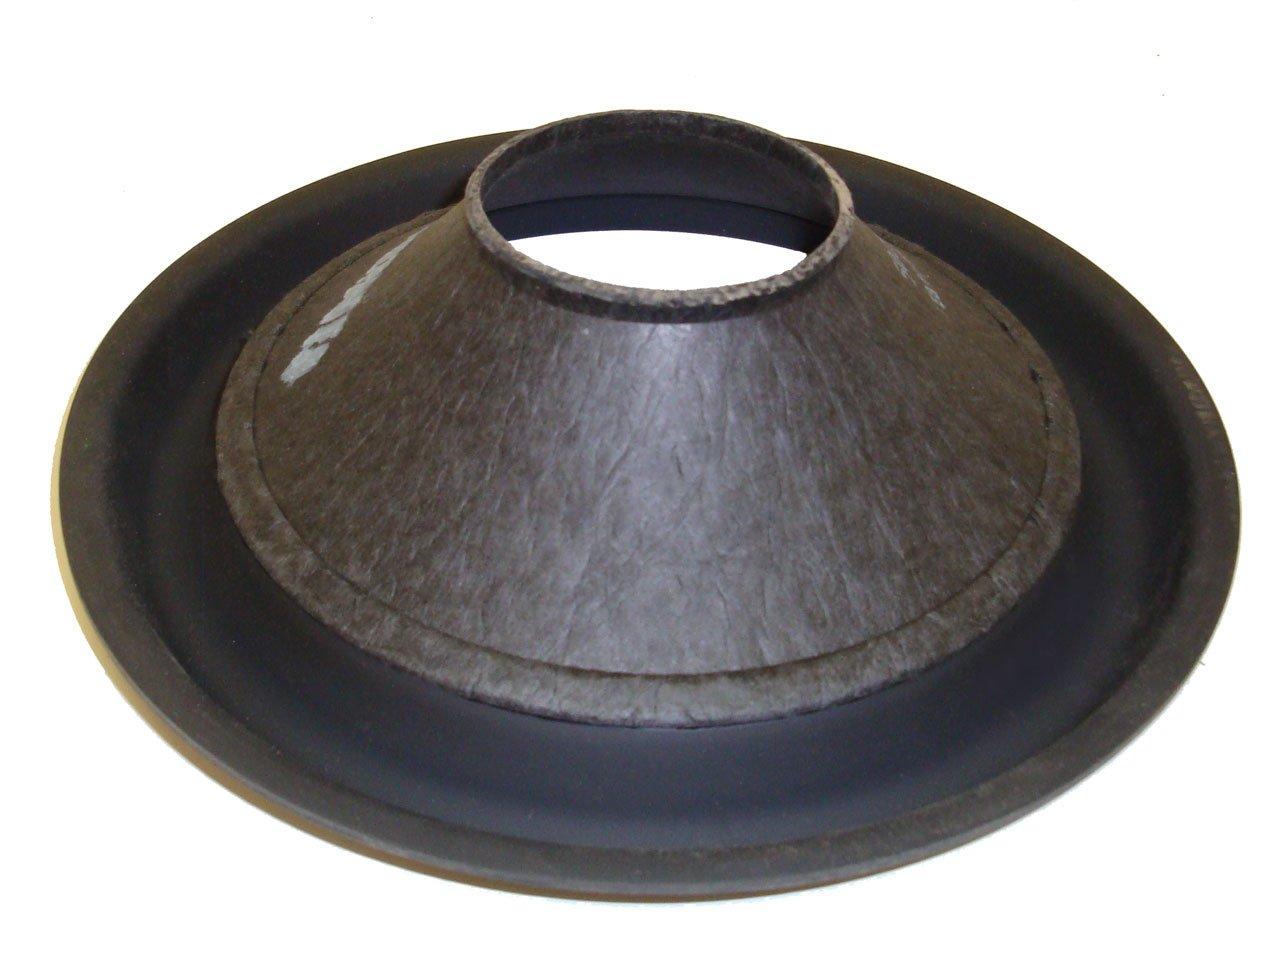 12'' Genuine Rockford Fosgate T1 Series Kevlar Pulp Subwoofer Cone with Tall Heavy-Duty Rubber Surround